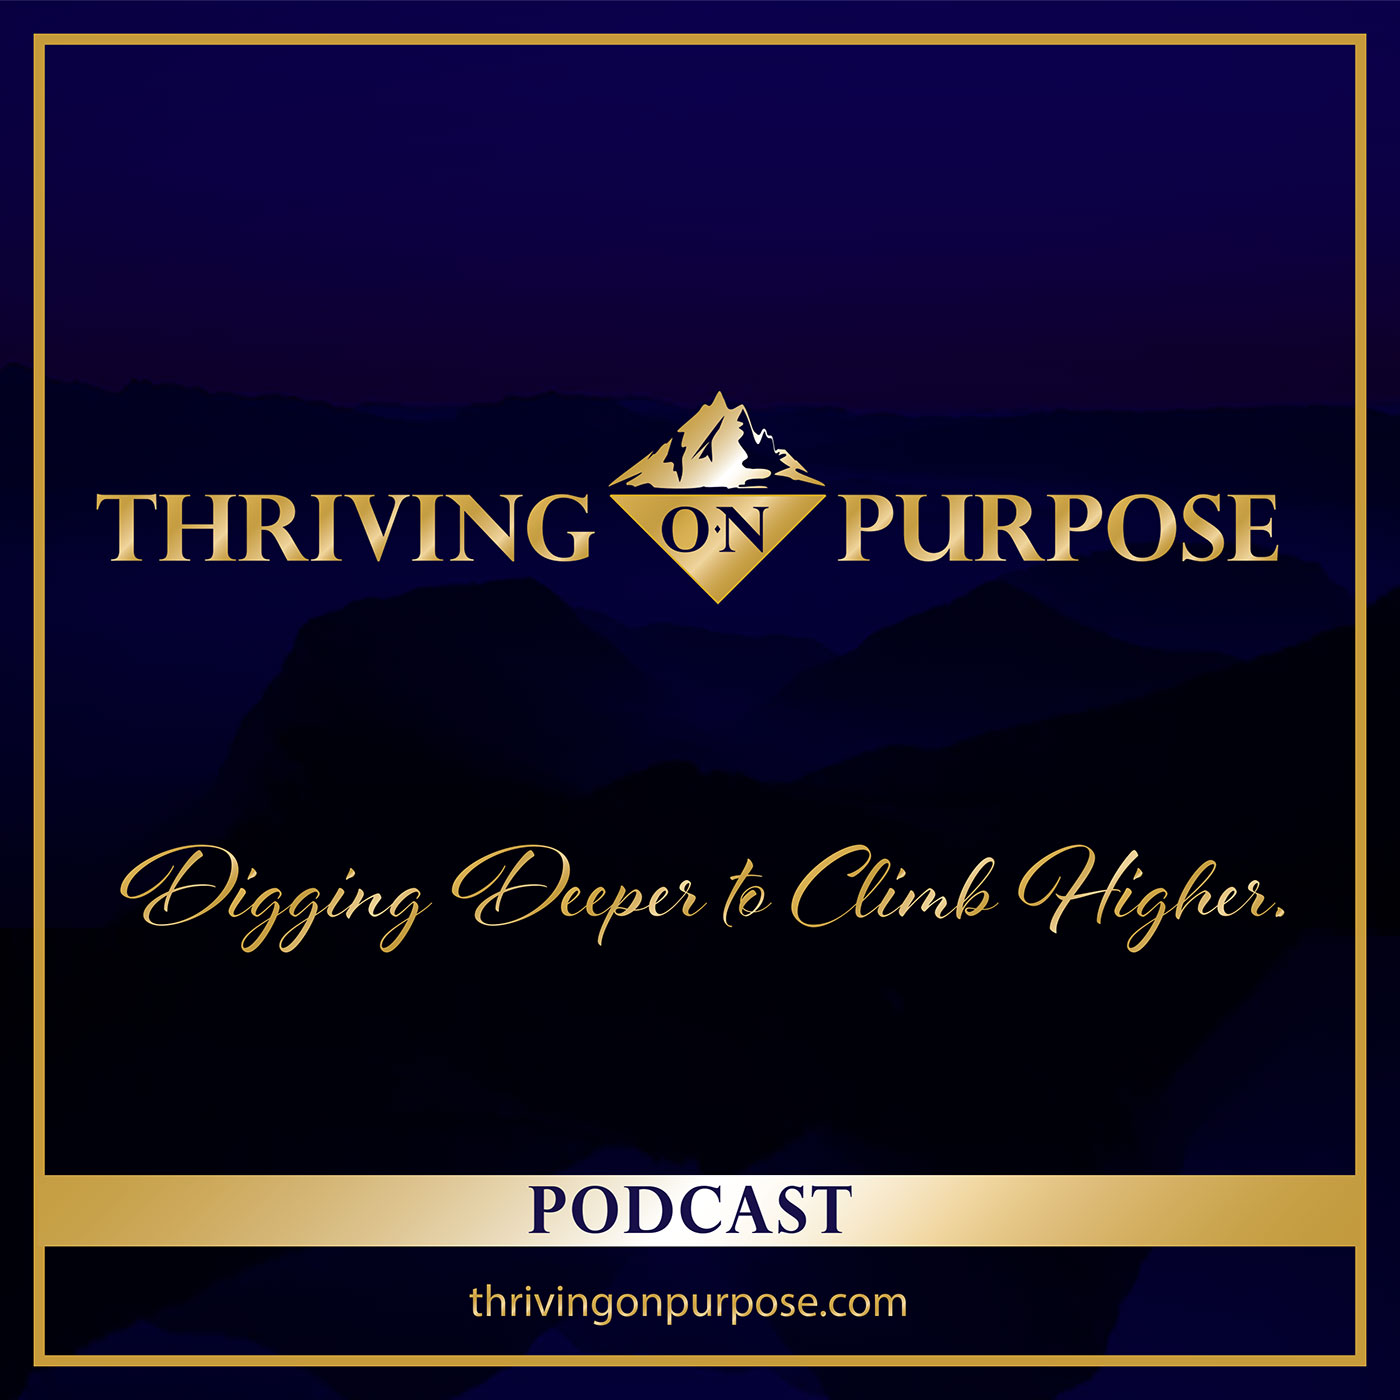 Show artwork for Thriving on Purpose Podcast